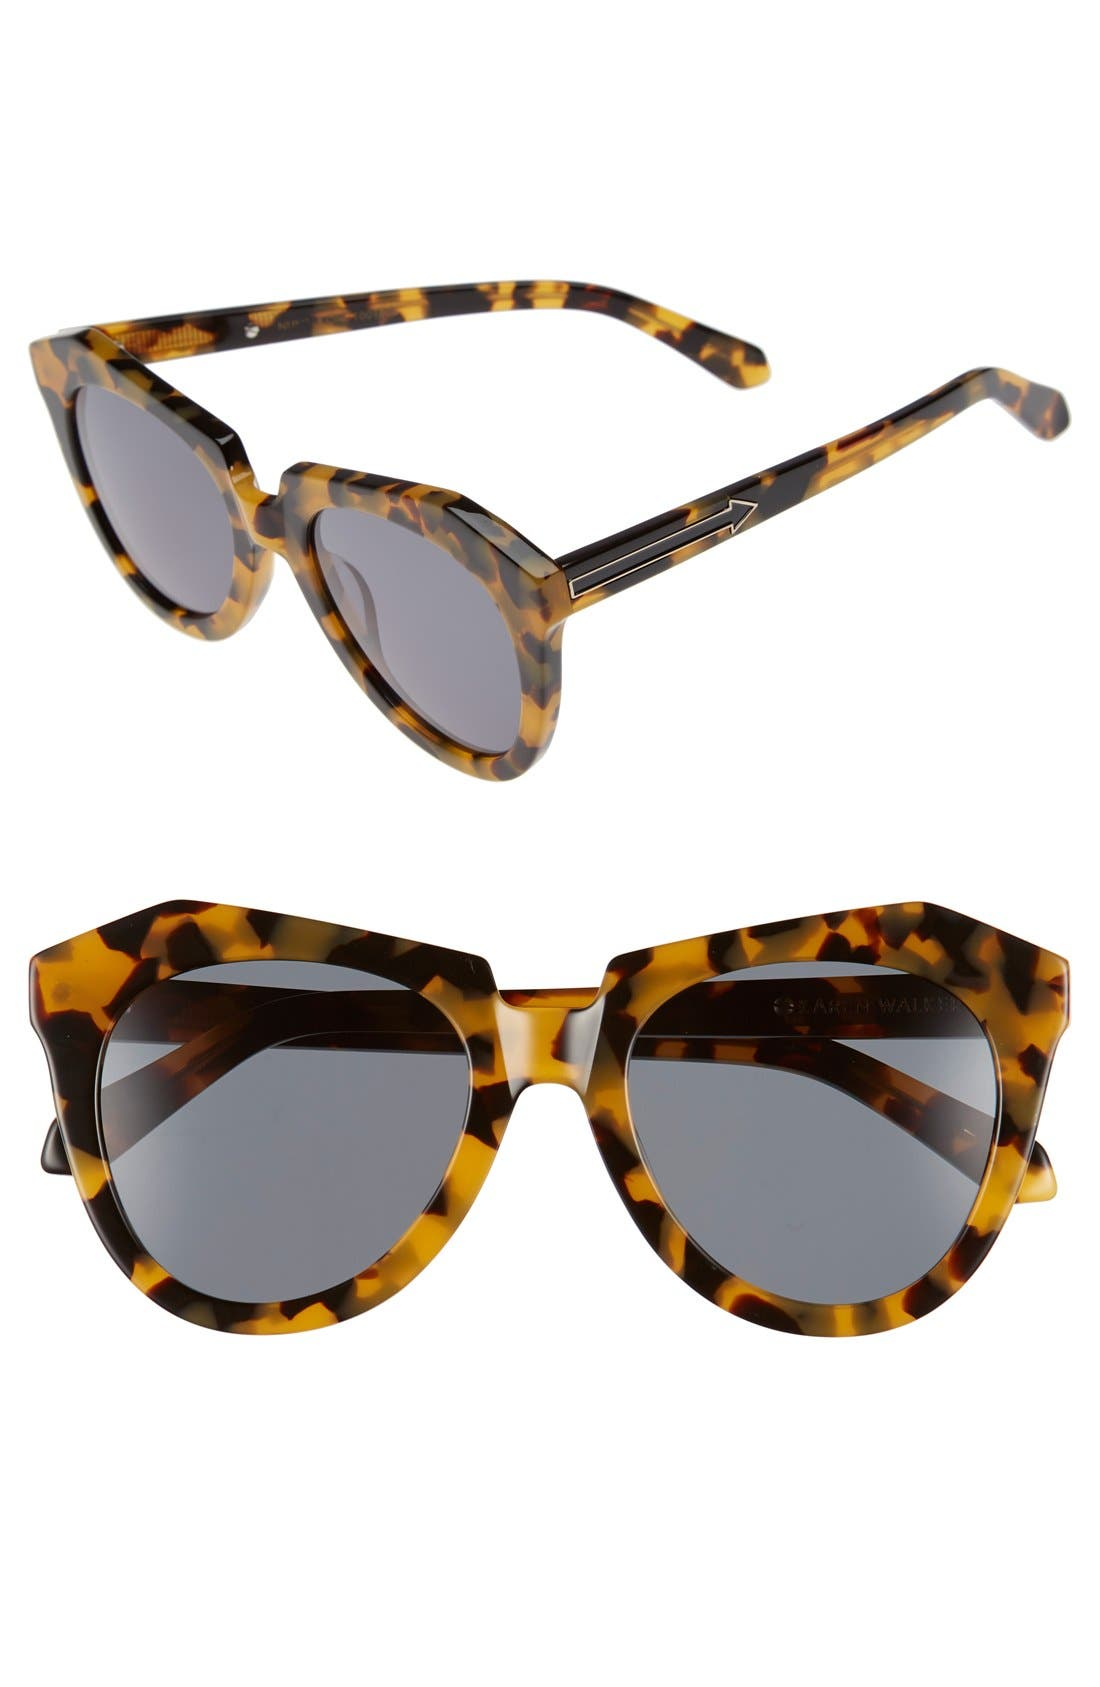 Main Image - Karen Walker 'Number One' 50mm Sunglasses